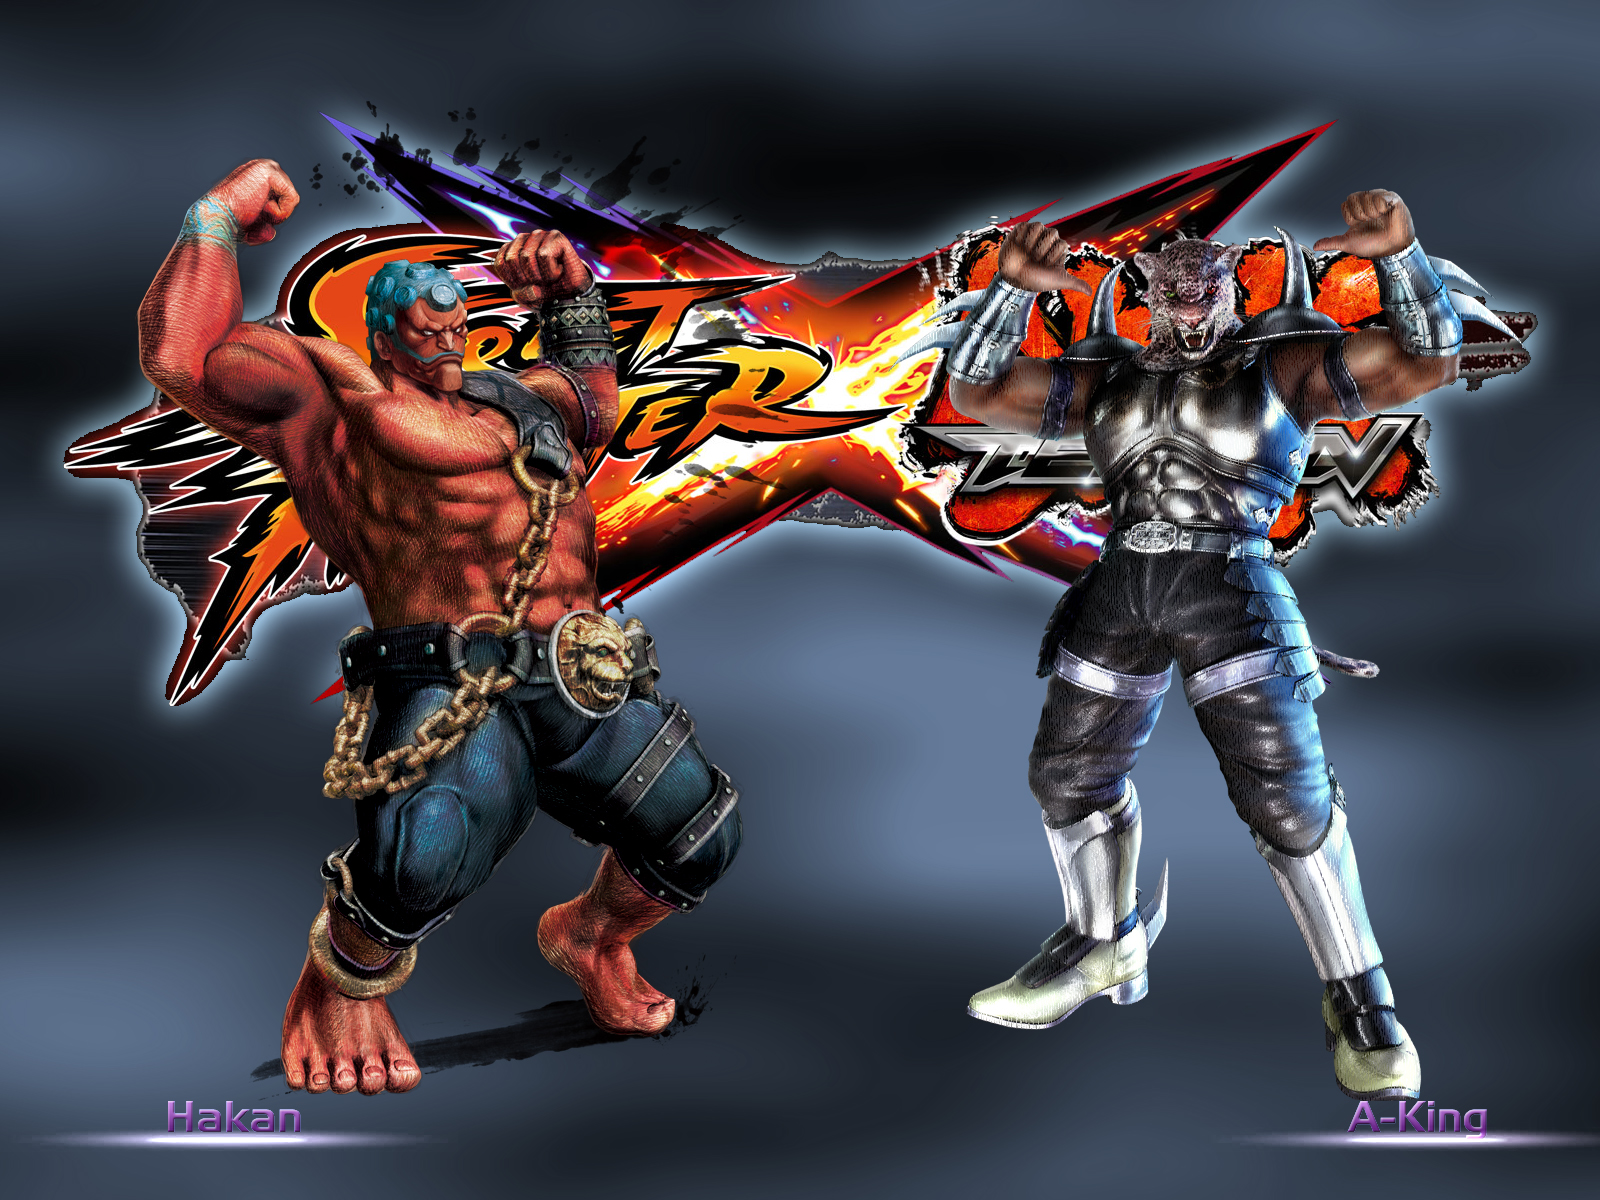 Hakan vs A-king - SFxTekken by khotebabu